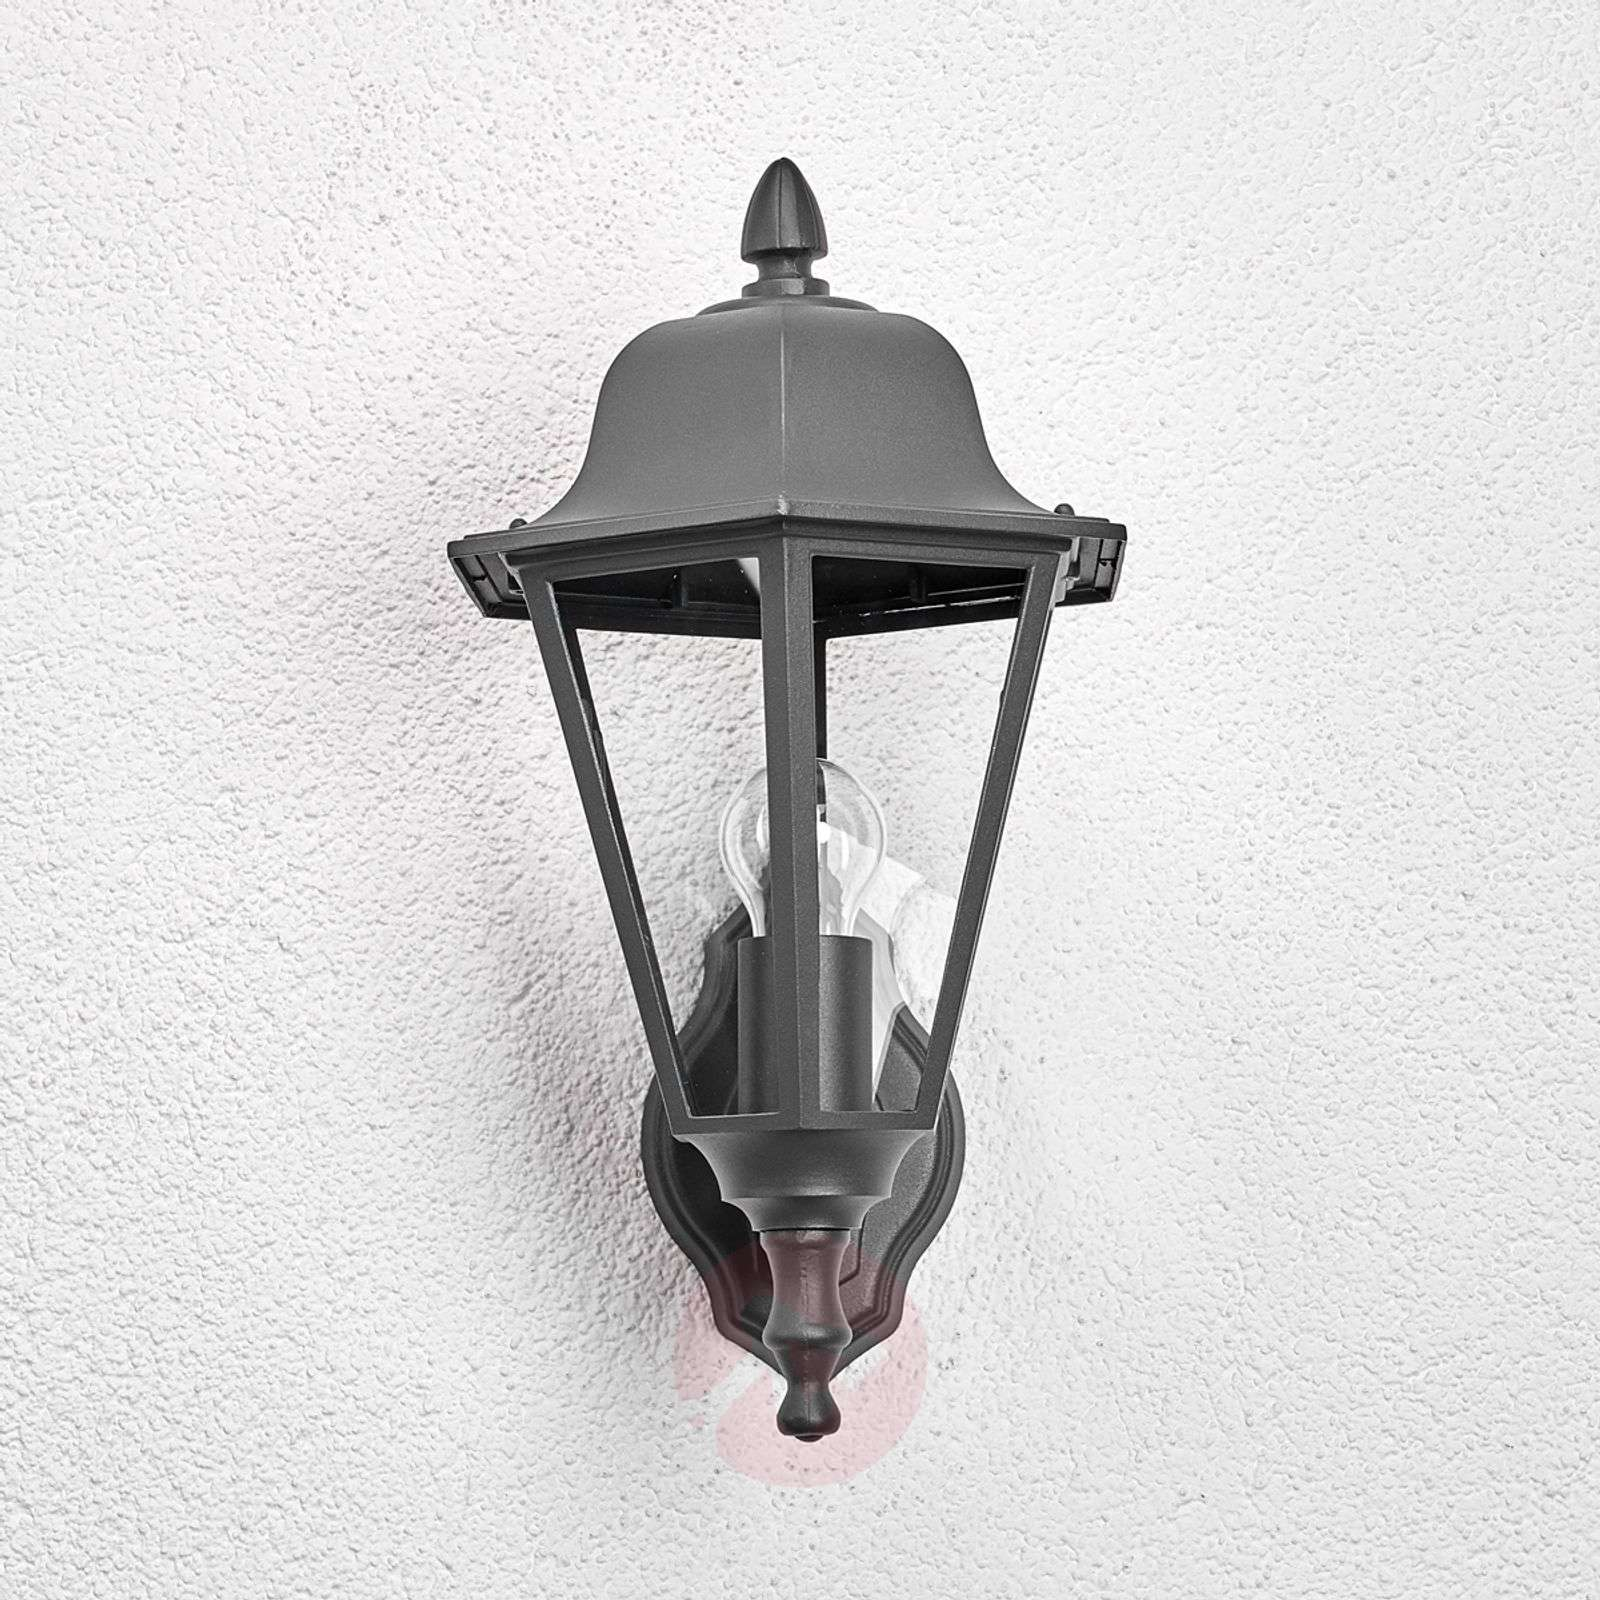 Outside Wall Lights Grey : Edana - outdoor wall light in graphite grey Lights.co.uk